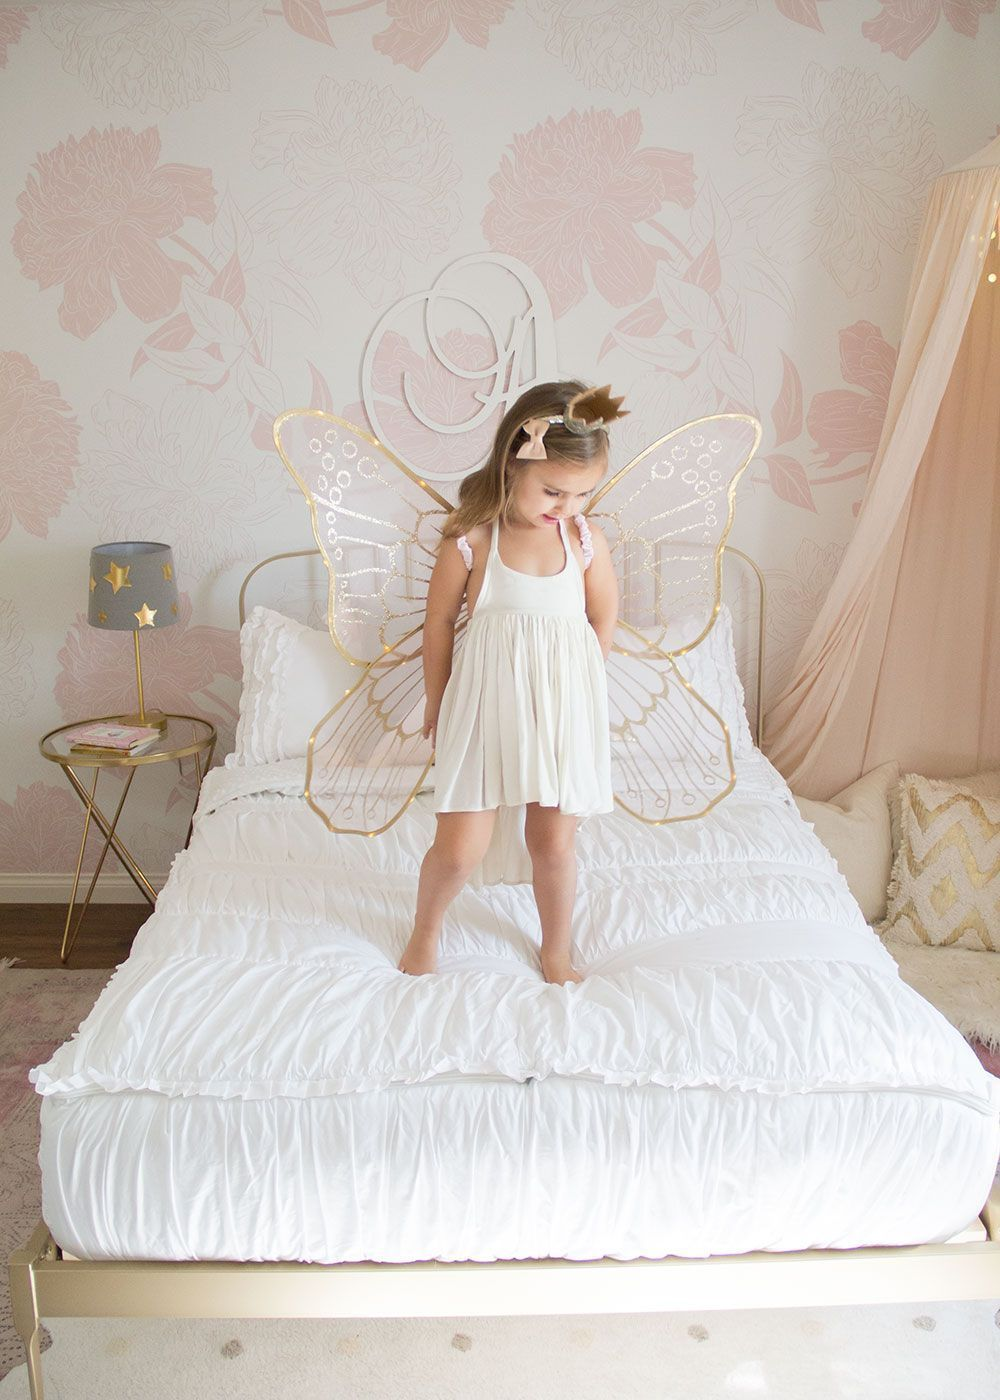 our big girl's room reveal #beddysbedding this little fairy girl is loving her super easy beddy's bedding for her new big girl room! | thelovedesignedlife.com #beddysbedding our big girl's room reveal #beddysbedding this little fairy girl is loving her super easy beddy's bedding for her new big girl room! | thelovedesignedlife.com #beddysbedding